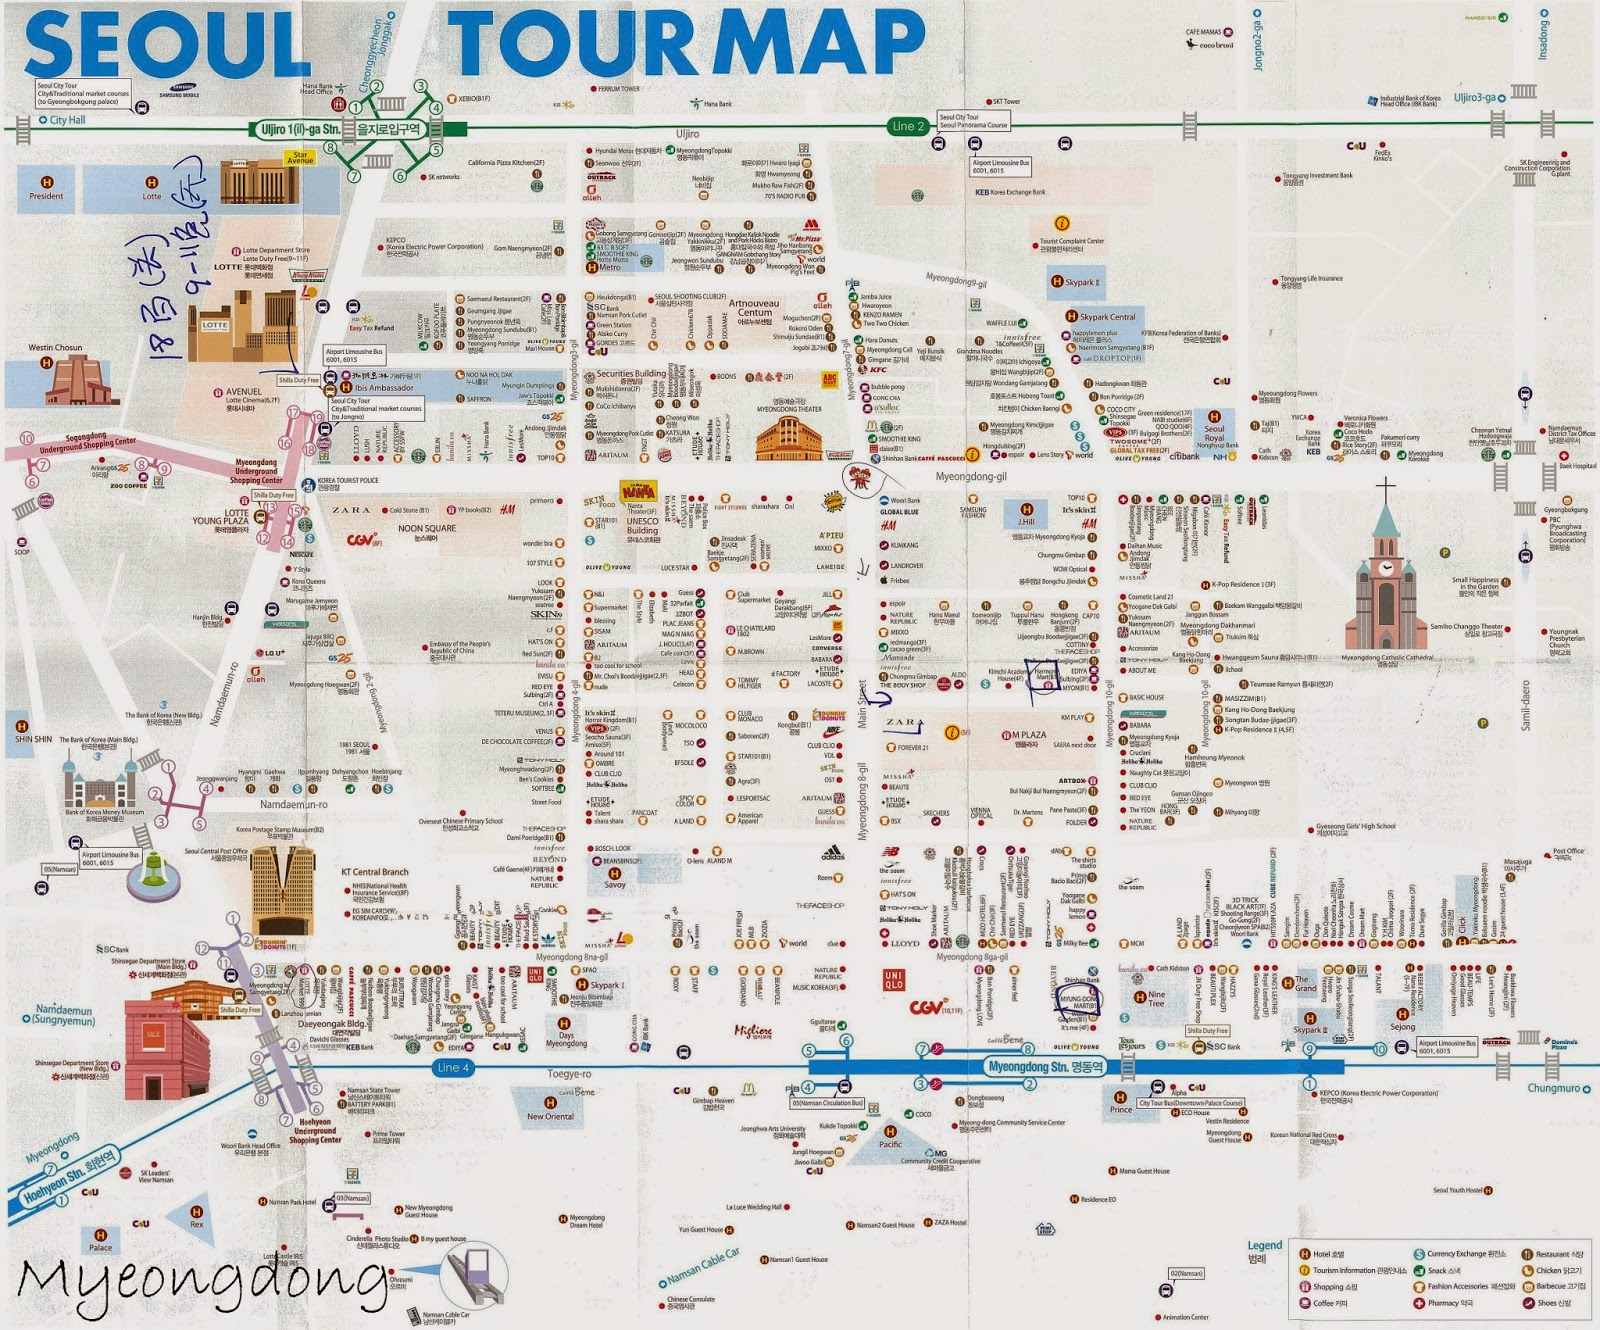 Seoul Map Attractions – Seoul Tourist Attractions Map